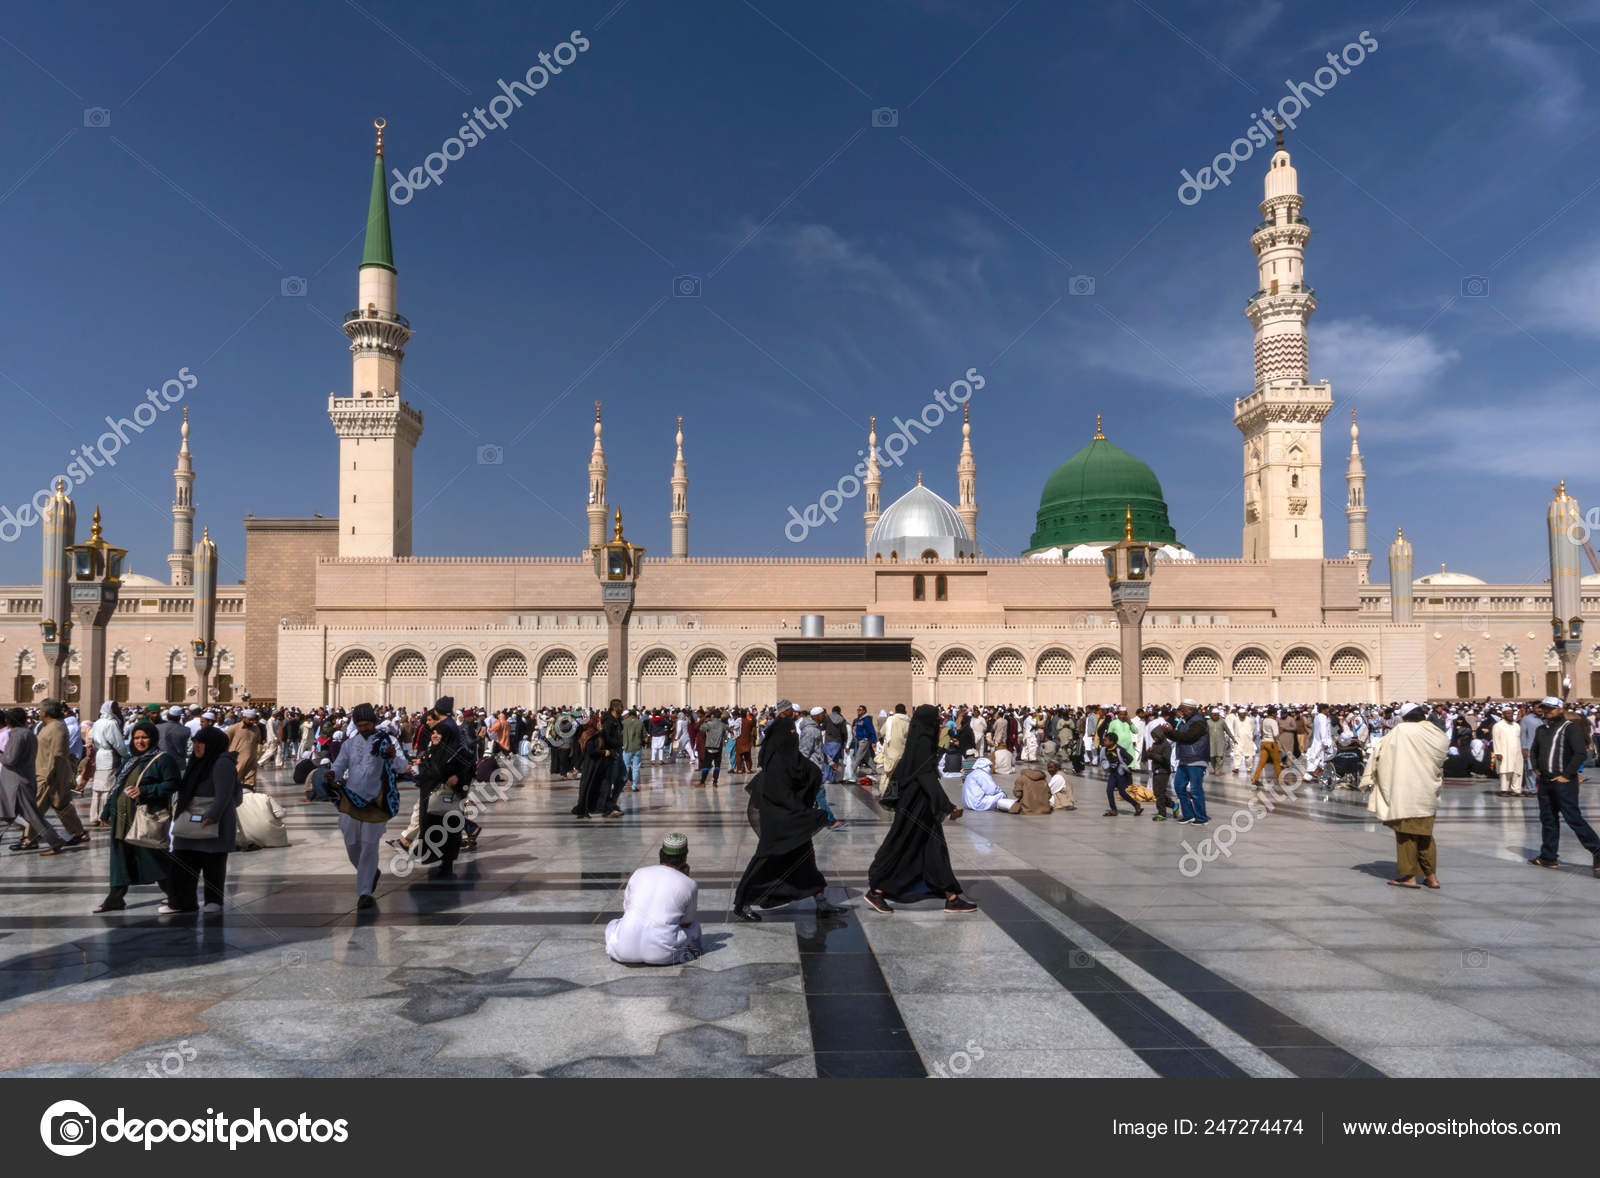 Medina Kingdom Saudi Arabia Ksa Feb Muslims Marching Front